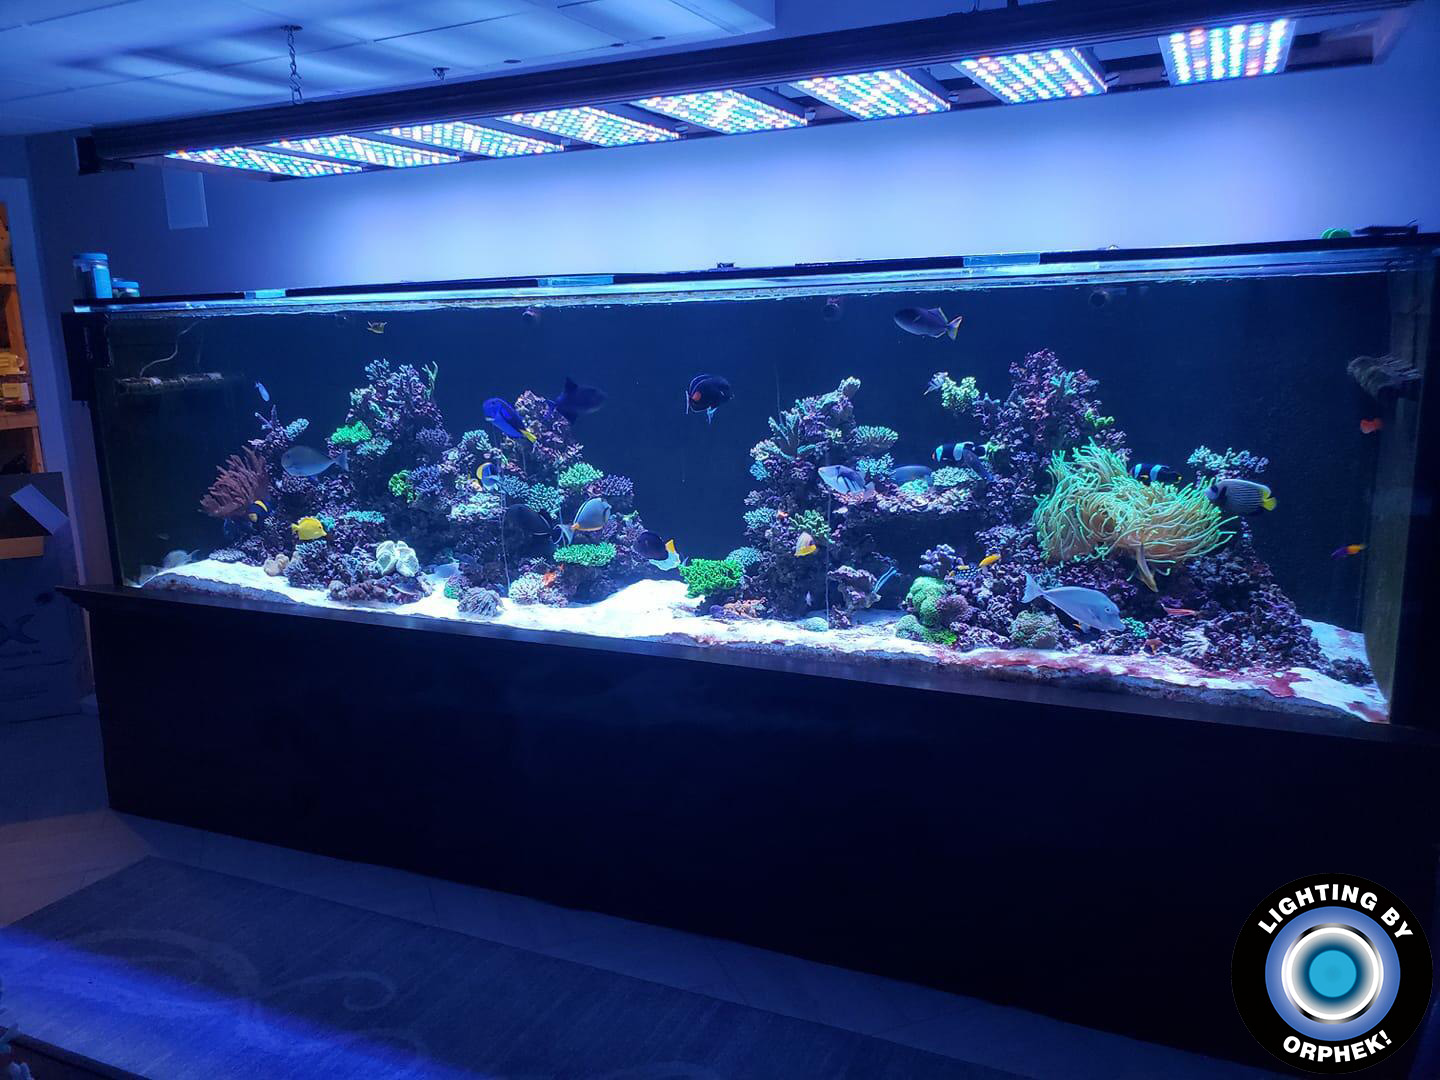 8 units of Atlantik V4 for a big aquarium display